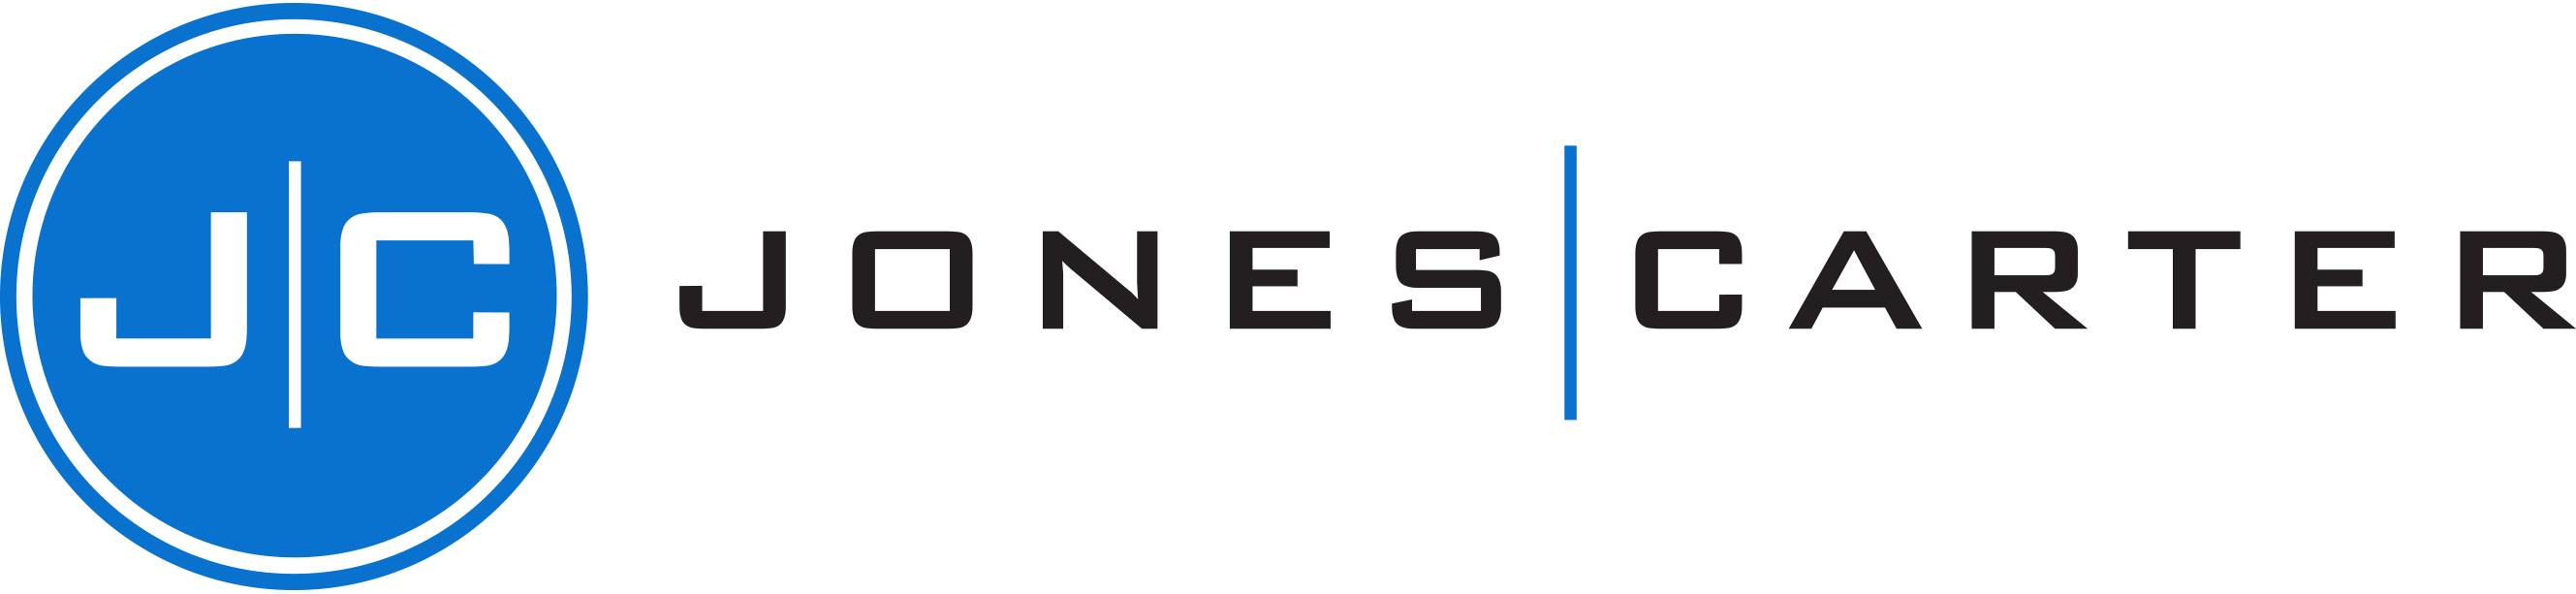 Jones Carter Logo